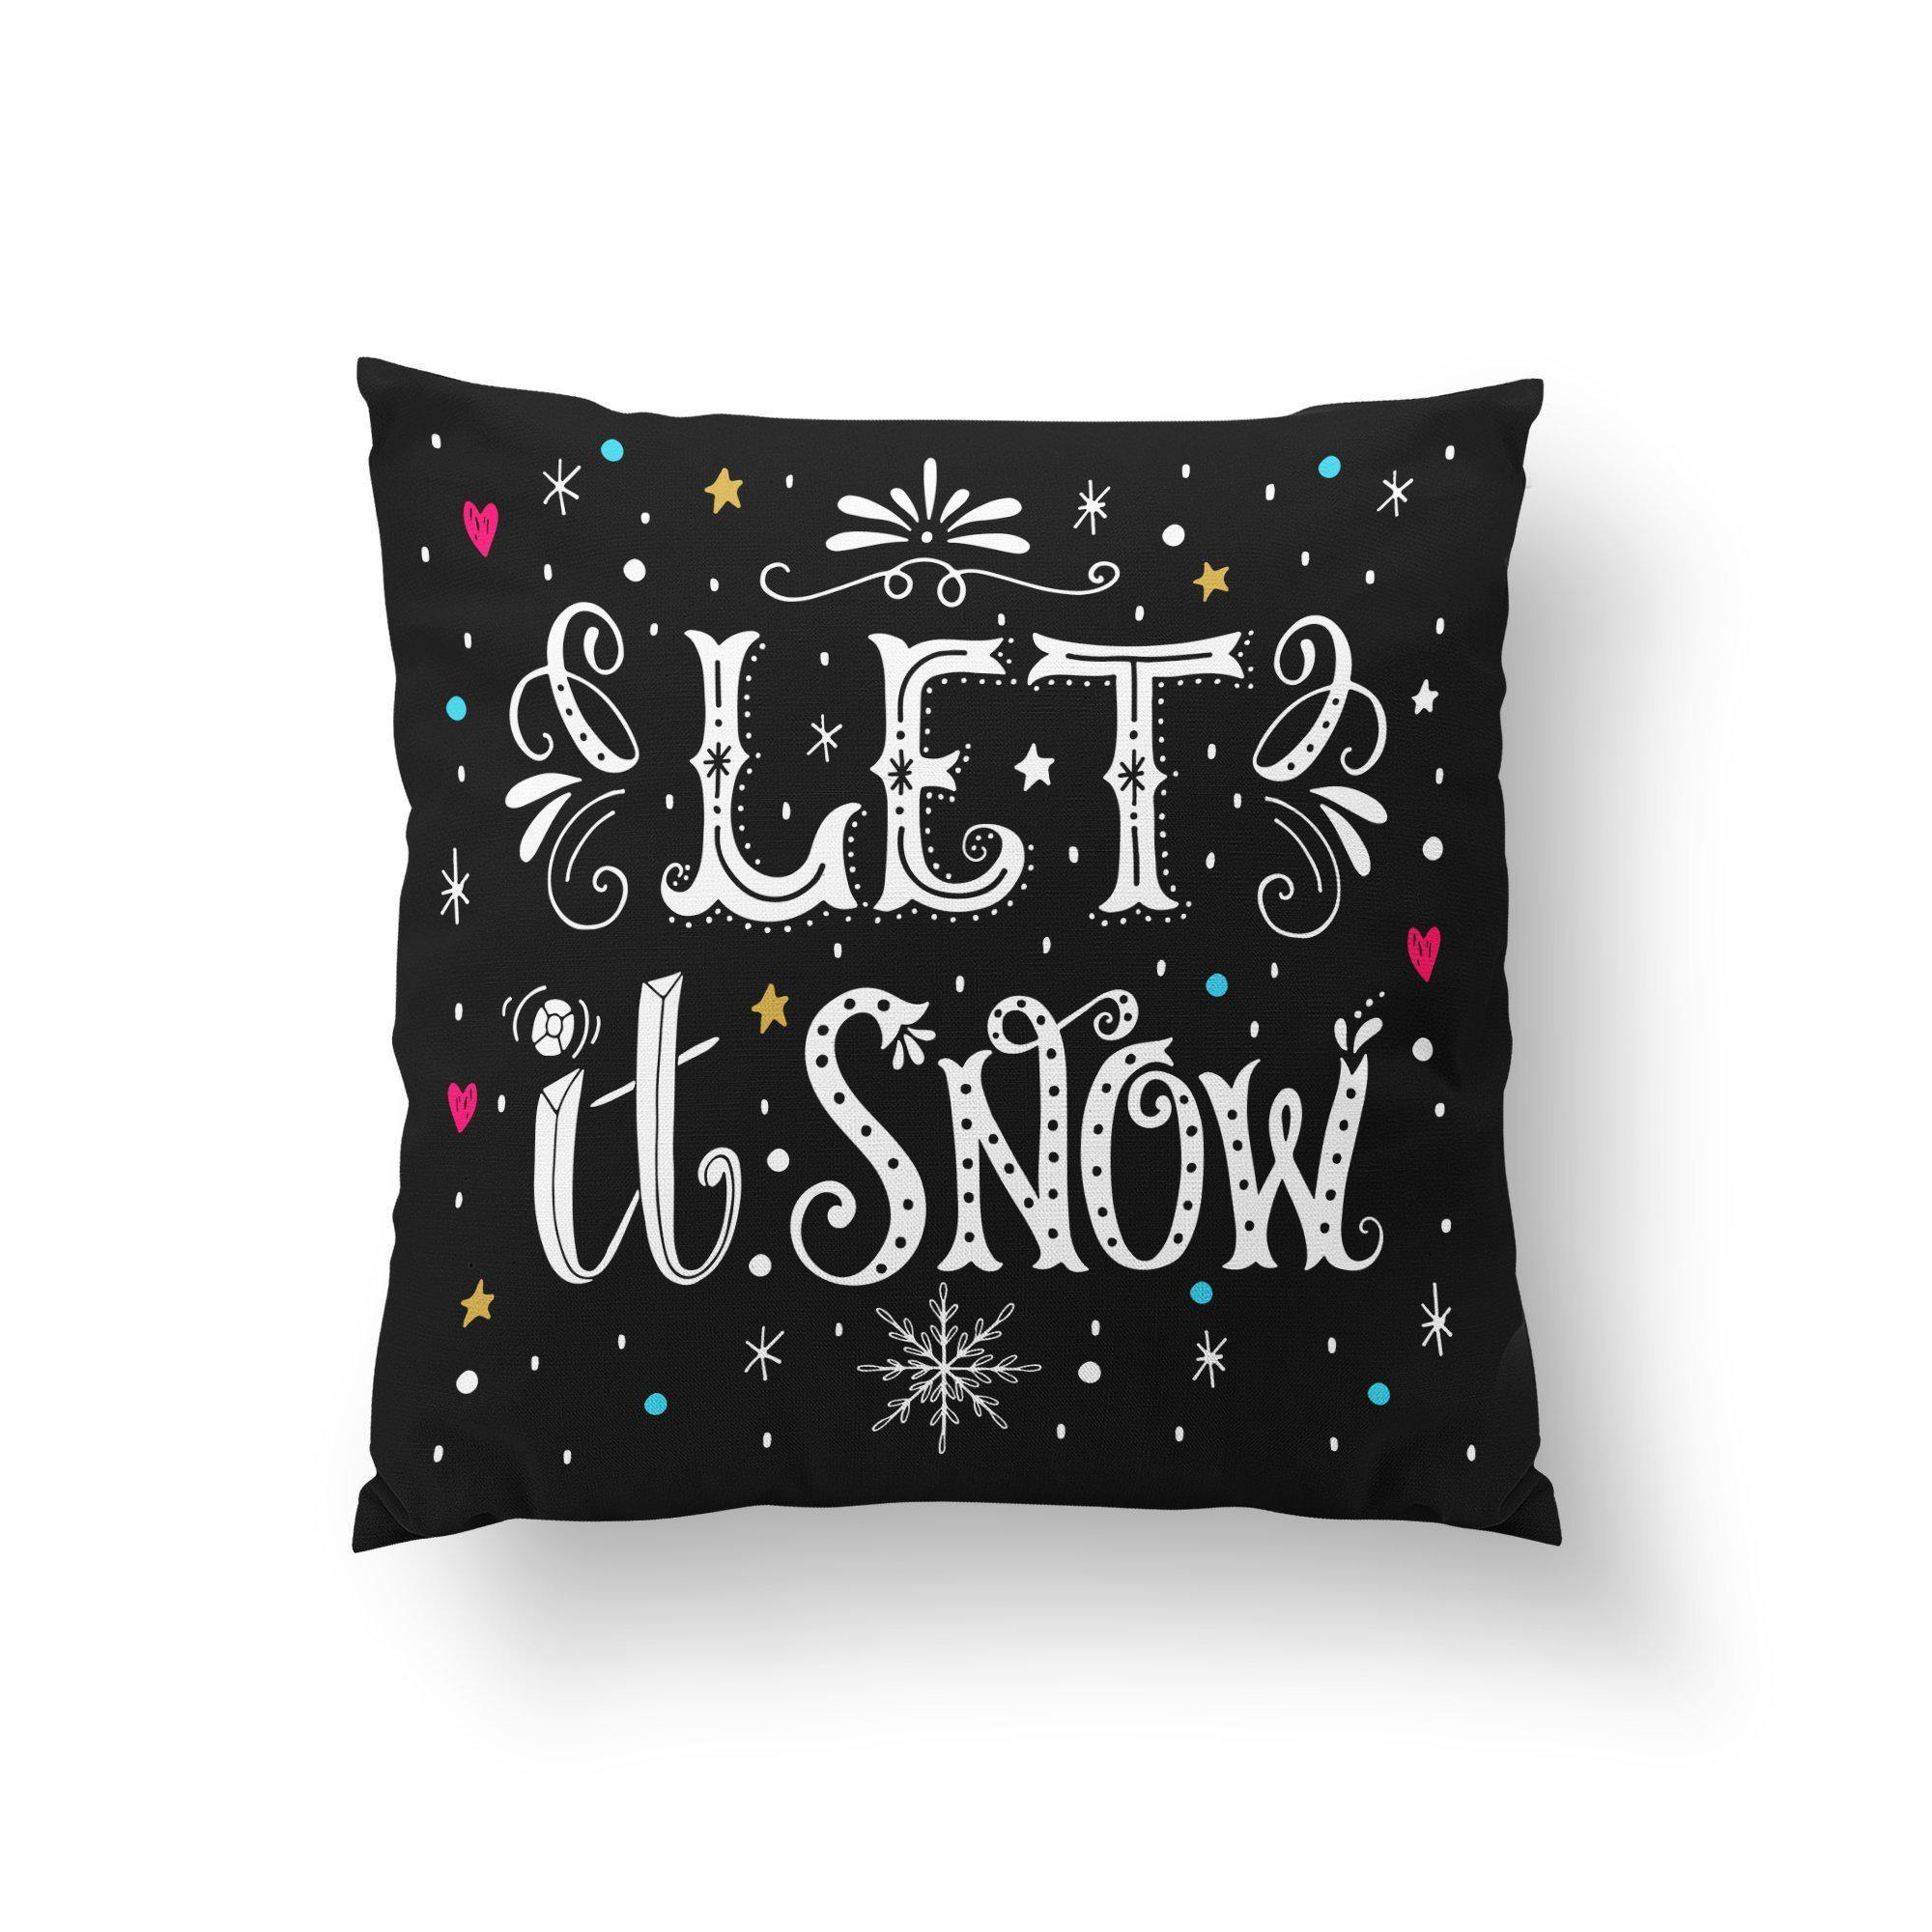 Modern Christmas Throw Pillow - Pillow Covers - W.FRANCIS